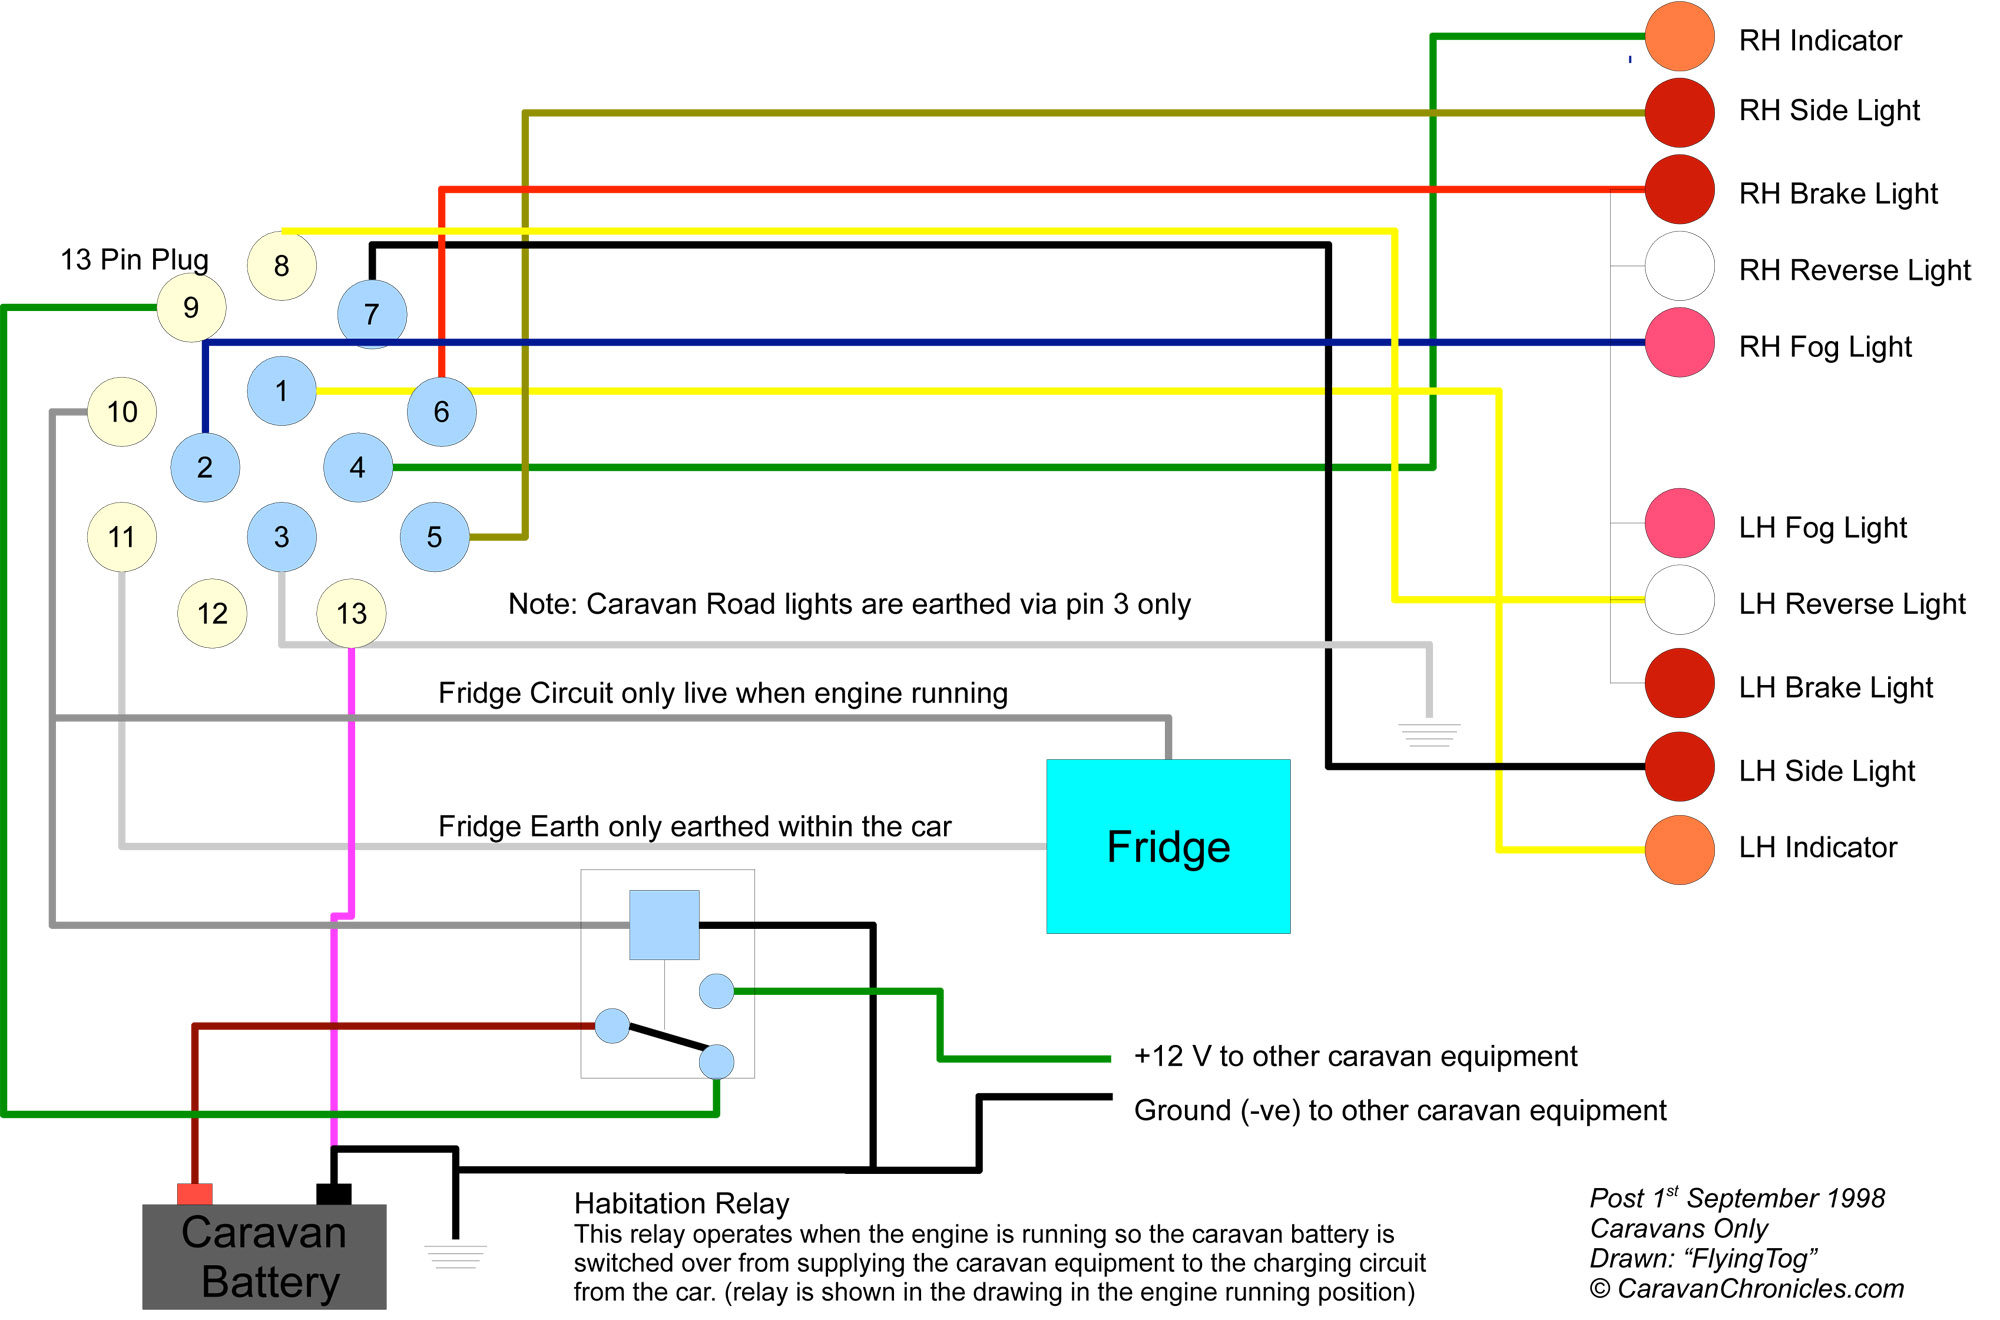 caravan wiring 13 pin understanding caravan and tow car electrics caravan chronicles caravan 12 volt electrics wiring diagram at reclaimingppi.co